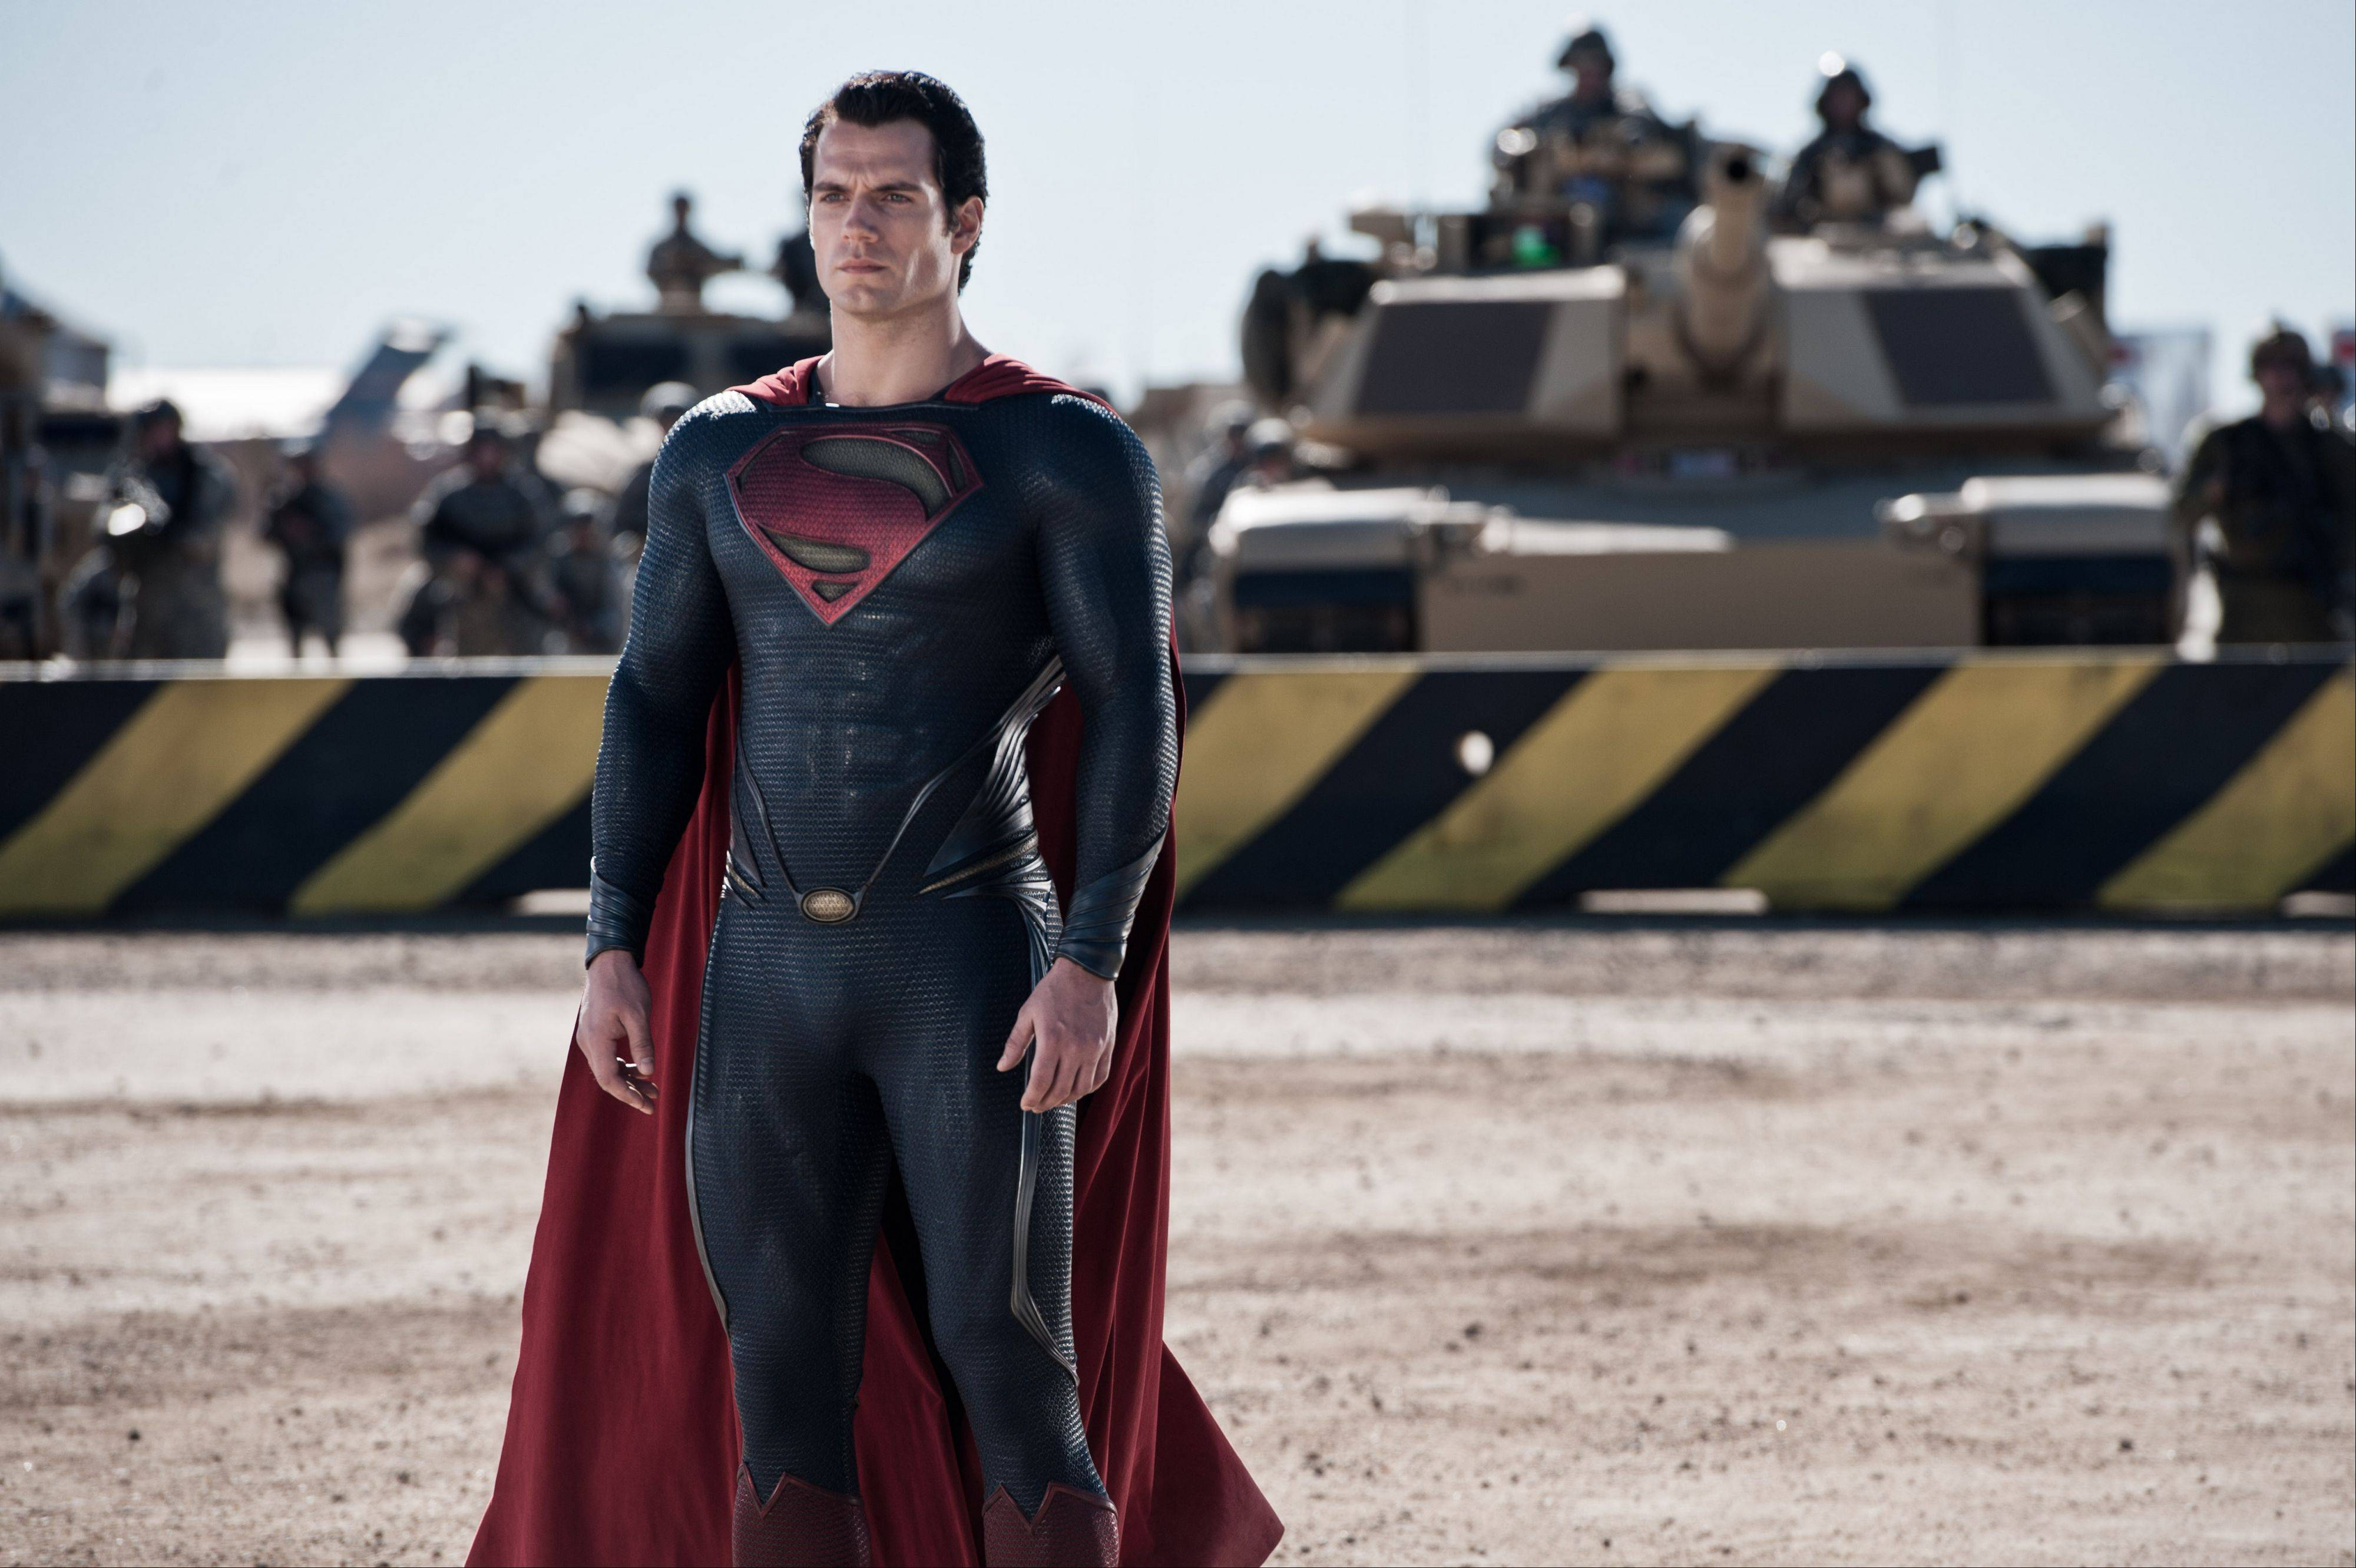 """Man of Steel"" director Zack Snyder announced at San Diego's Comic-Con that he will be making another Superman film that will also feature Batman."